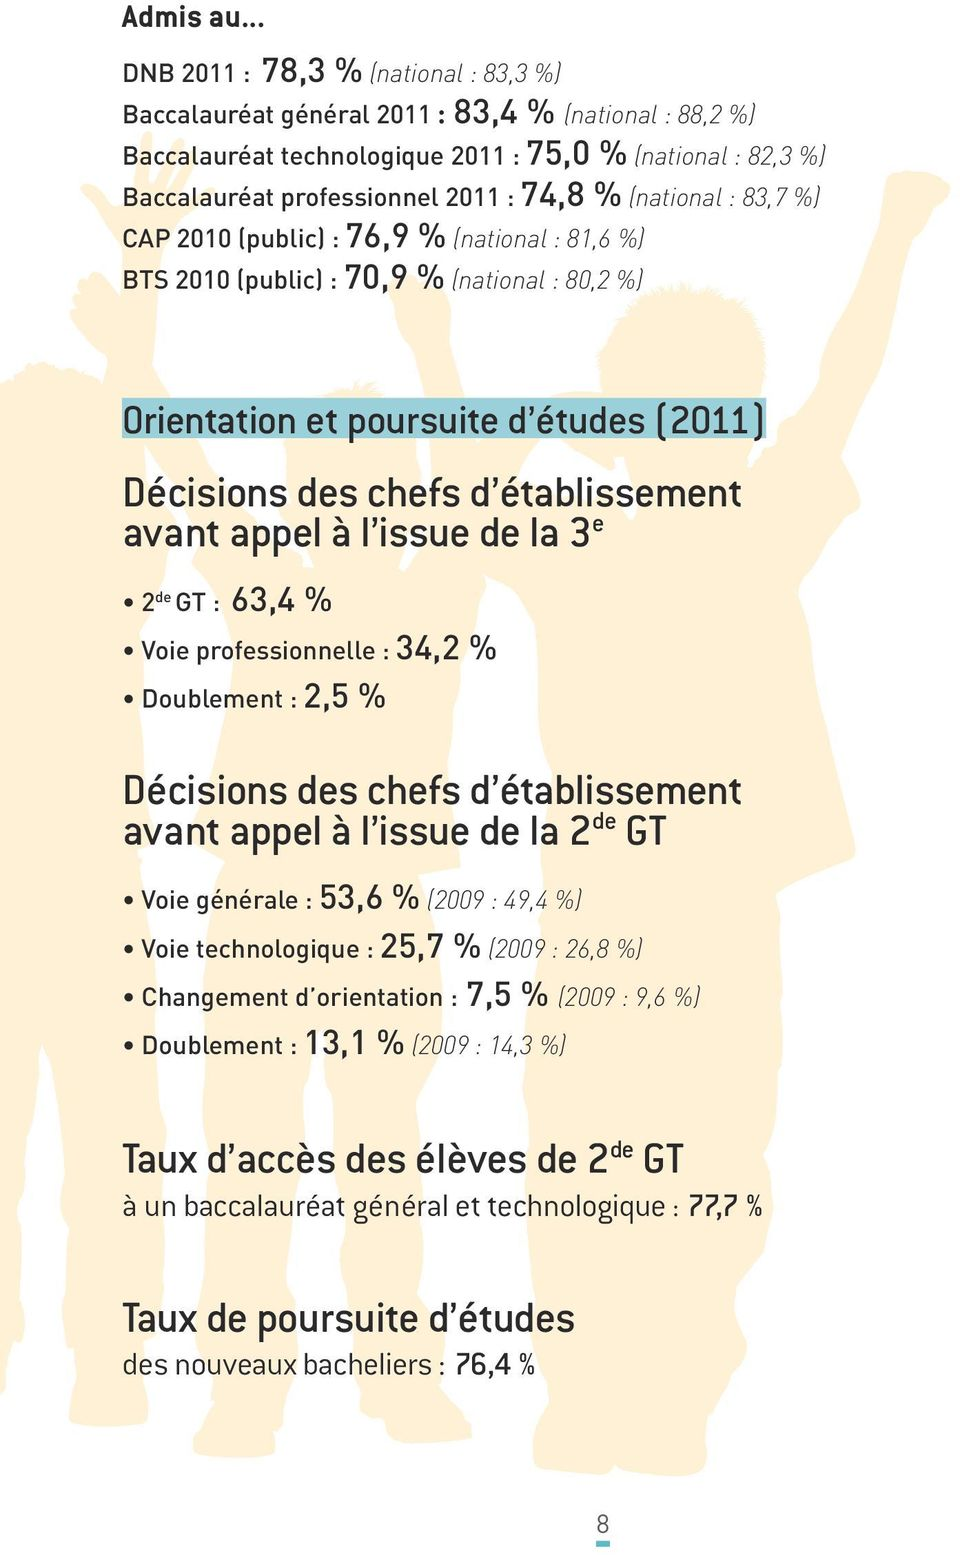 (national : 83,7 %) CAP 2010 (public) : 76,9 % (national : 81,6 %) BTS 2010 (public) : 70,9 % (national : 80,2 %) Orientation et poursuite d études (2011) Décisions des chefs d établissement avant